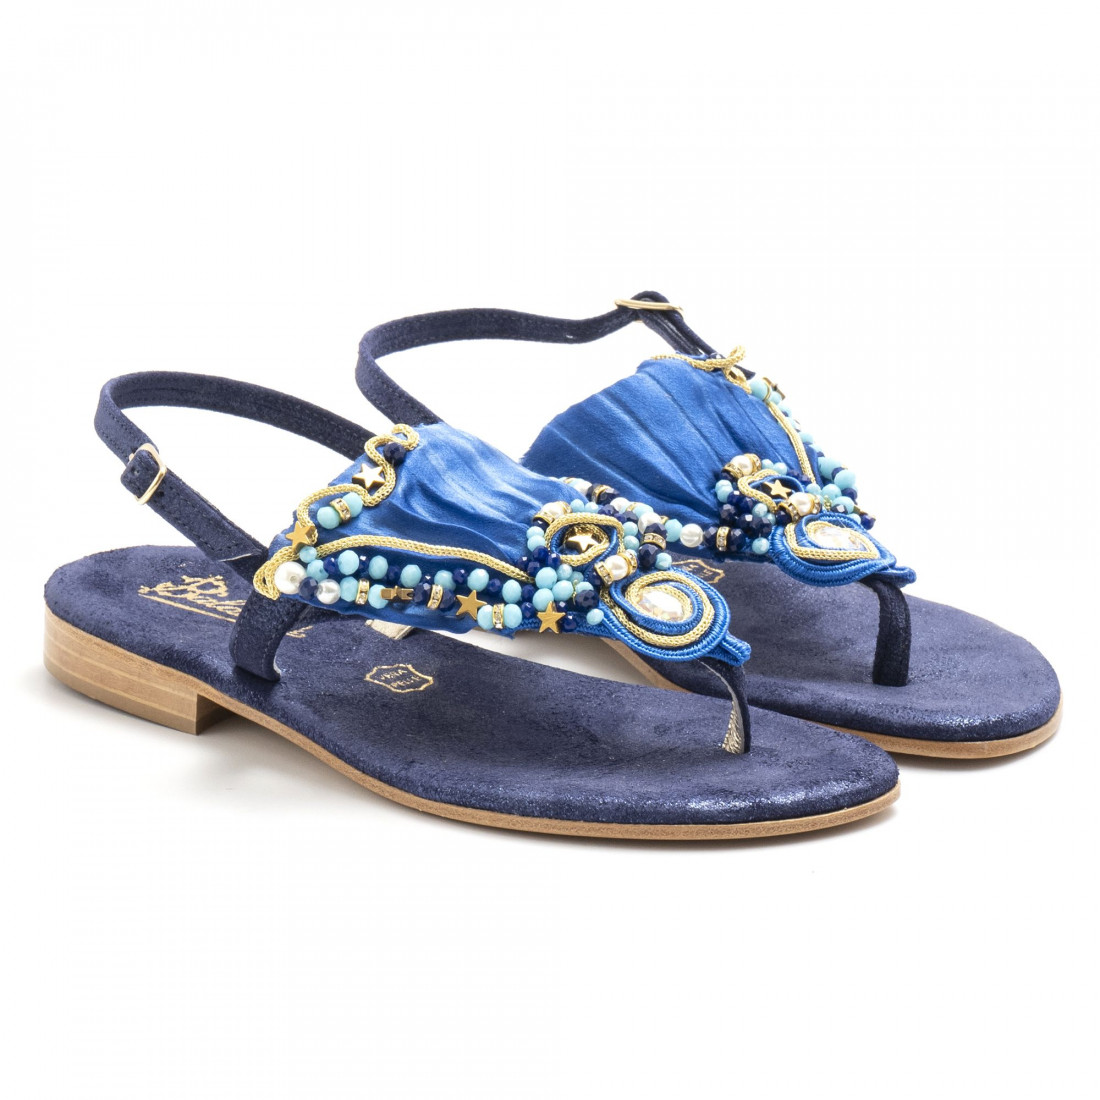 sandals woman balduccelli e25017 4940